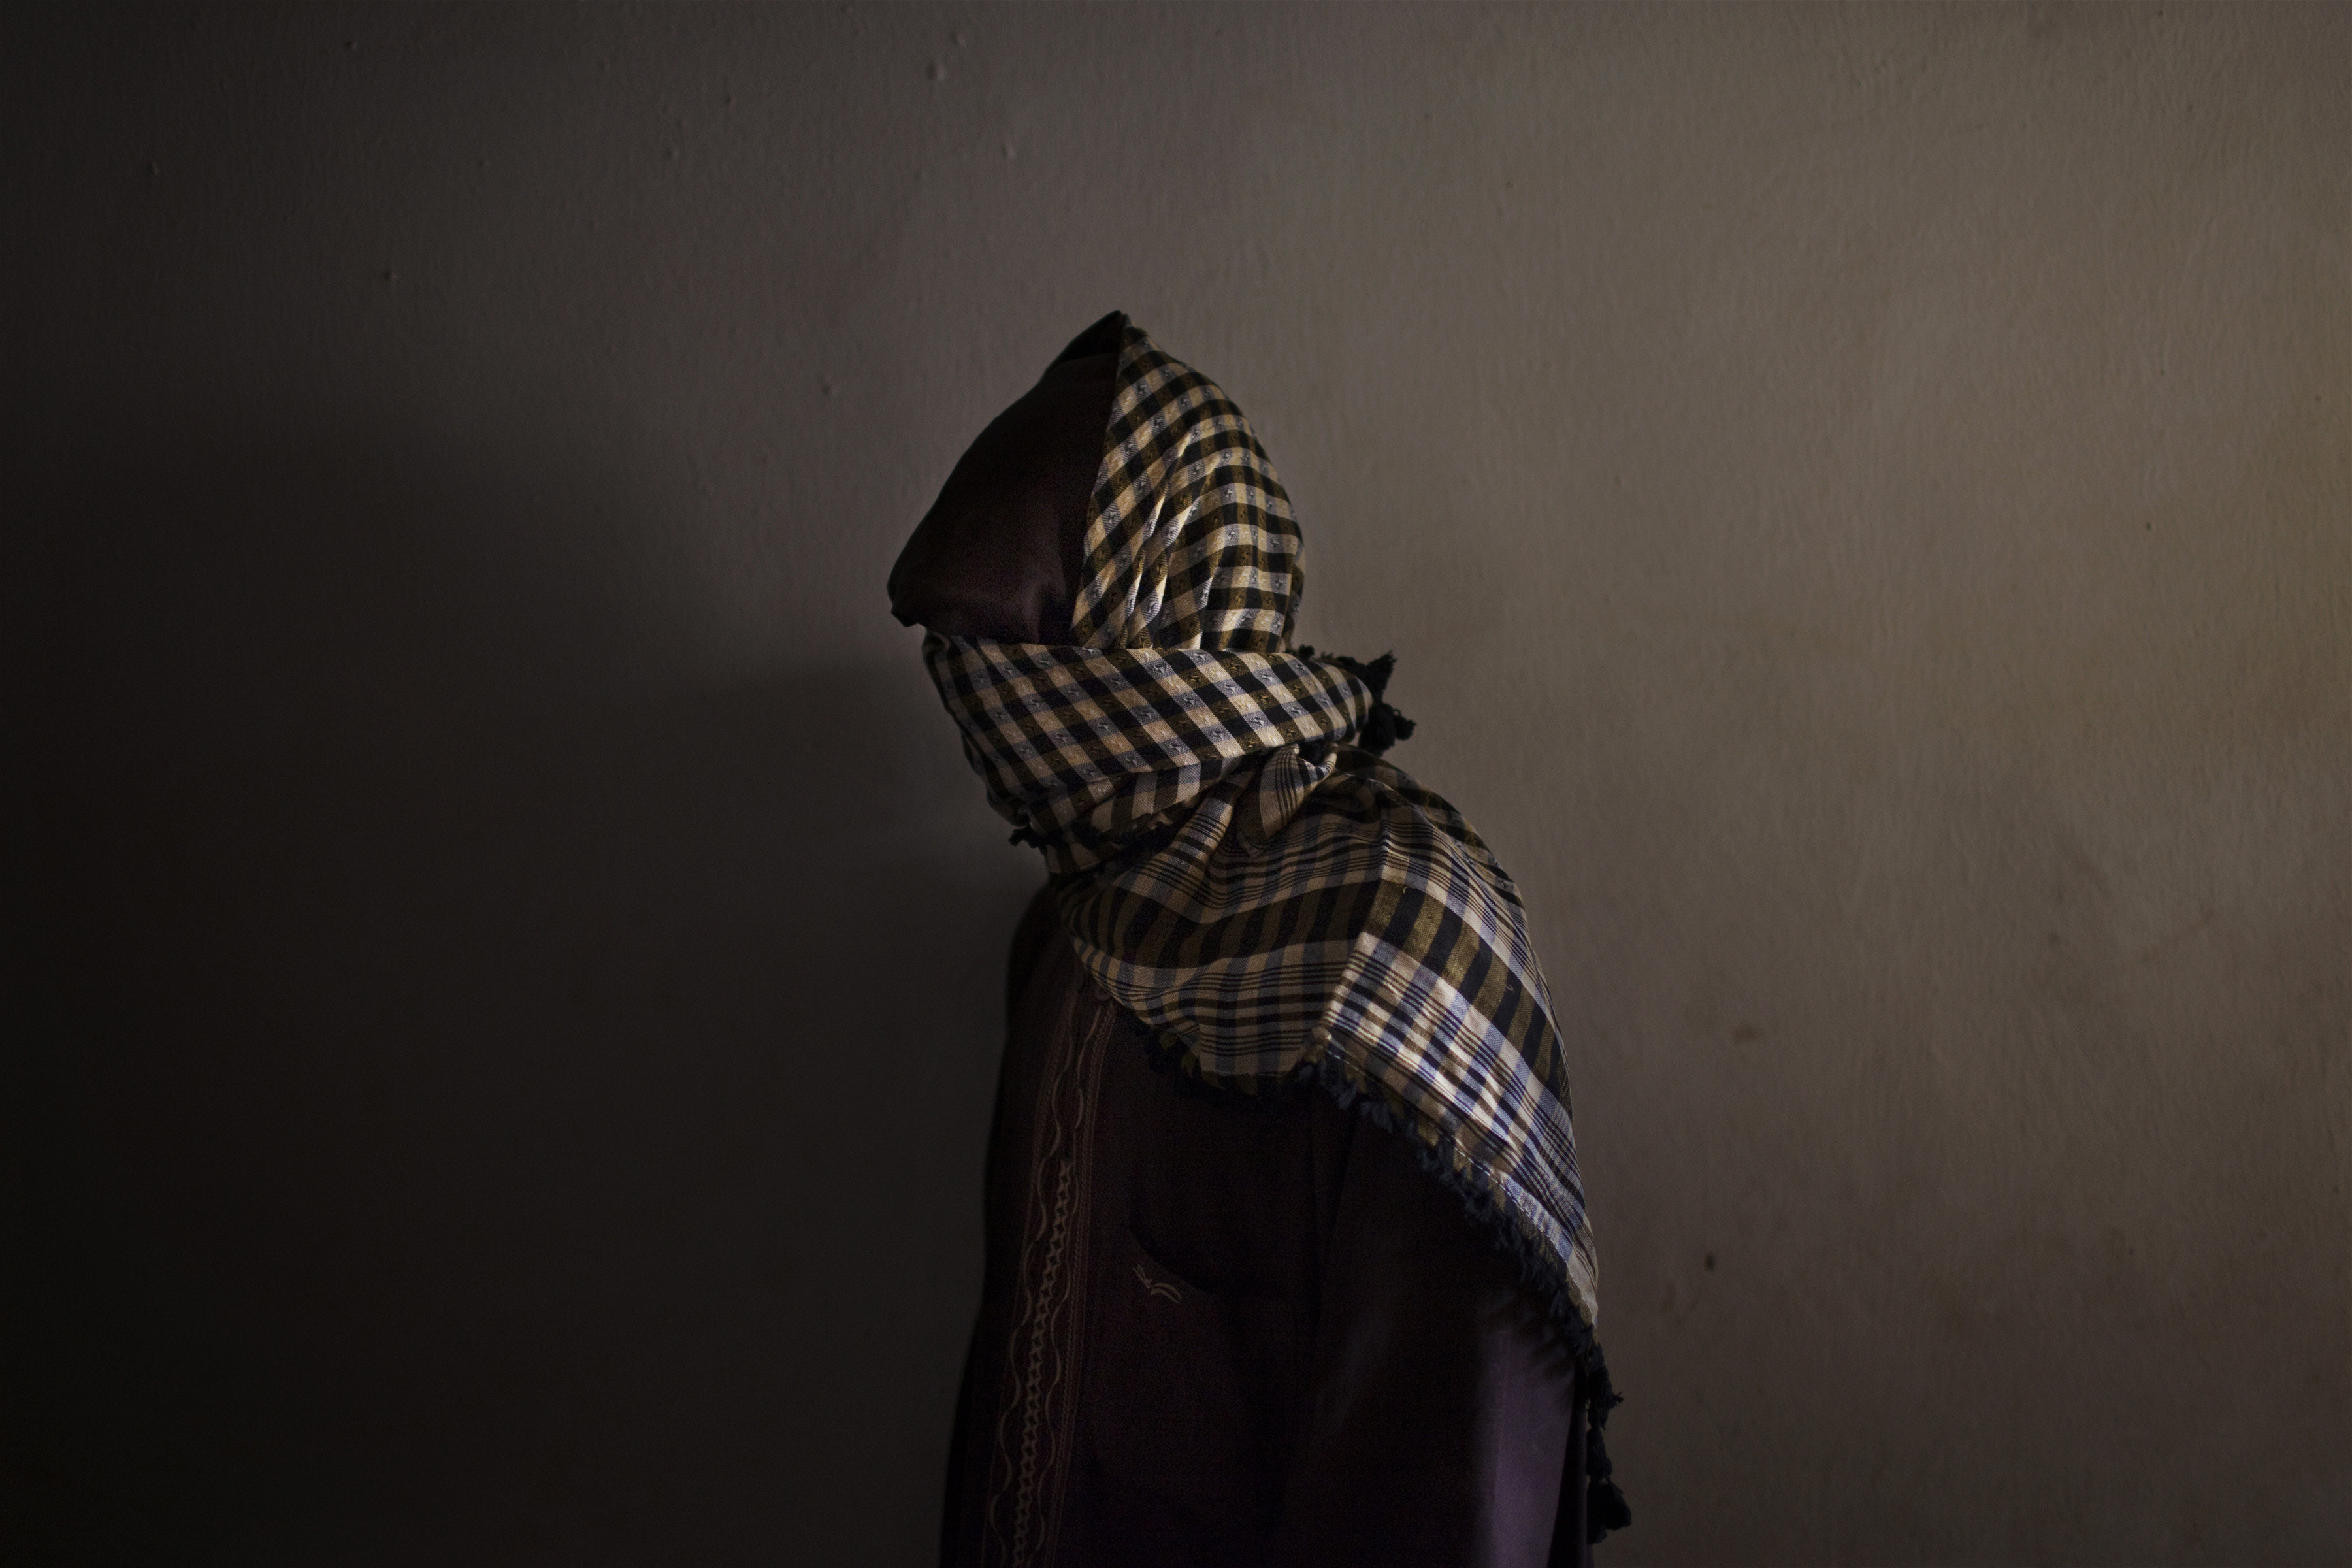 A member of Boko Haram in a suburb of Kano, Nigeria, in 2012.